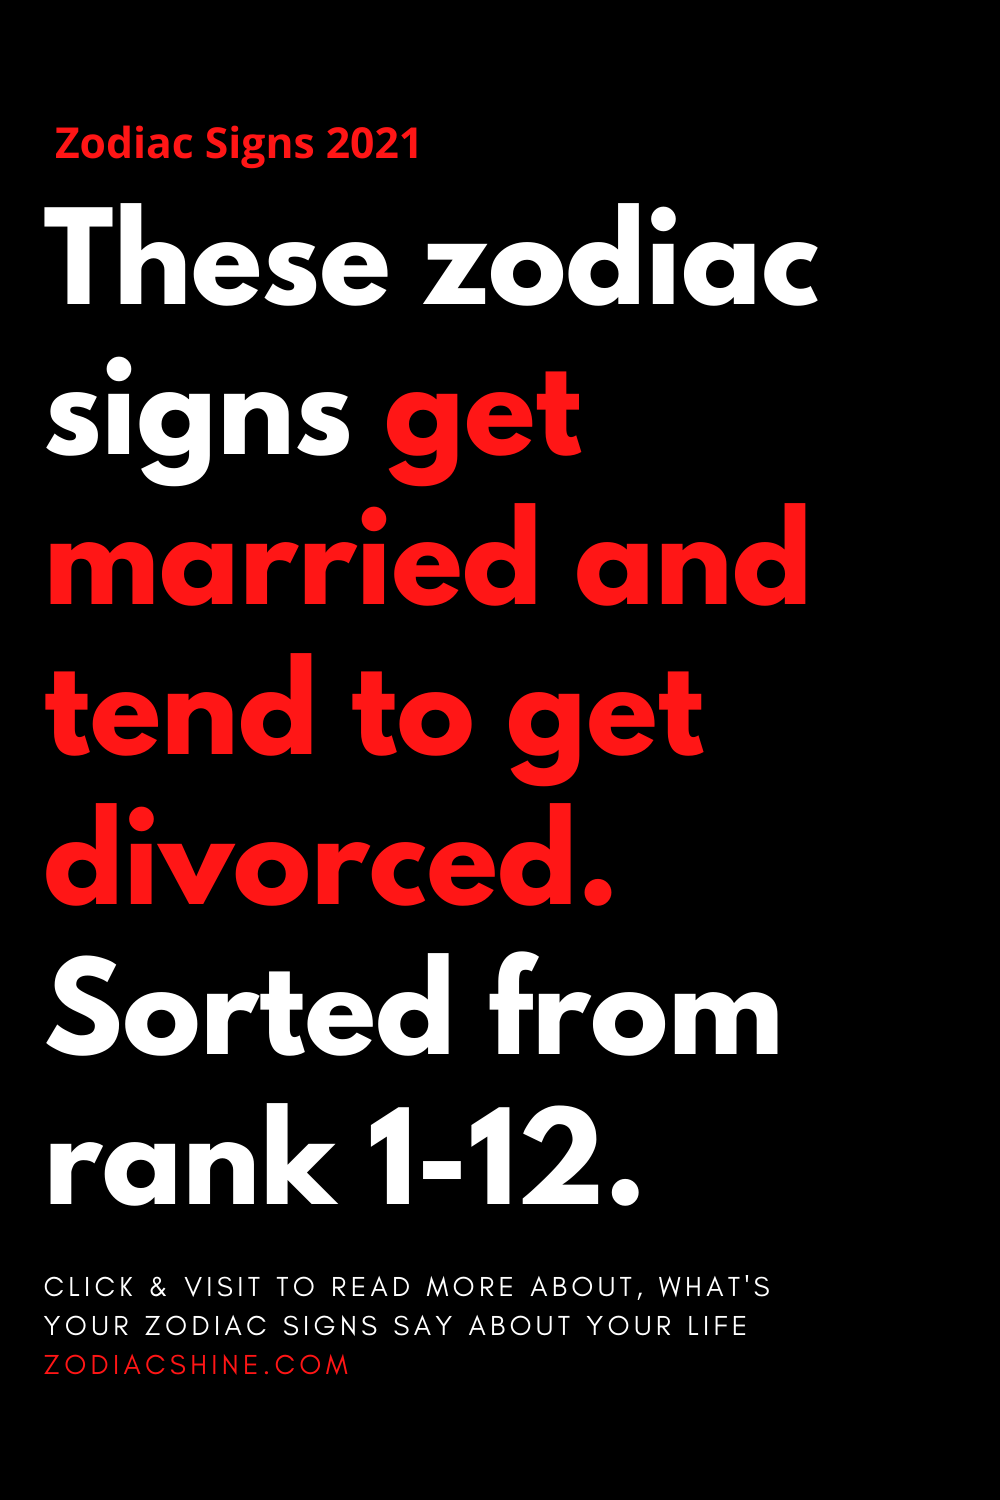 These zodiac signs get married and tend to get divorced. Sorted from rank 1-12.